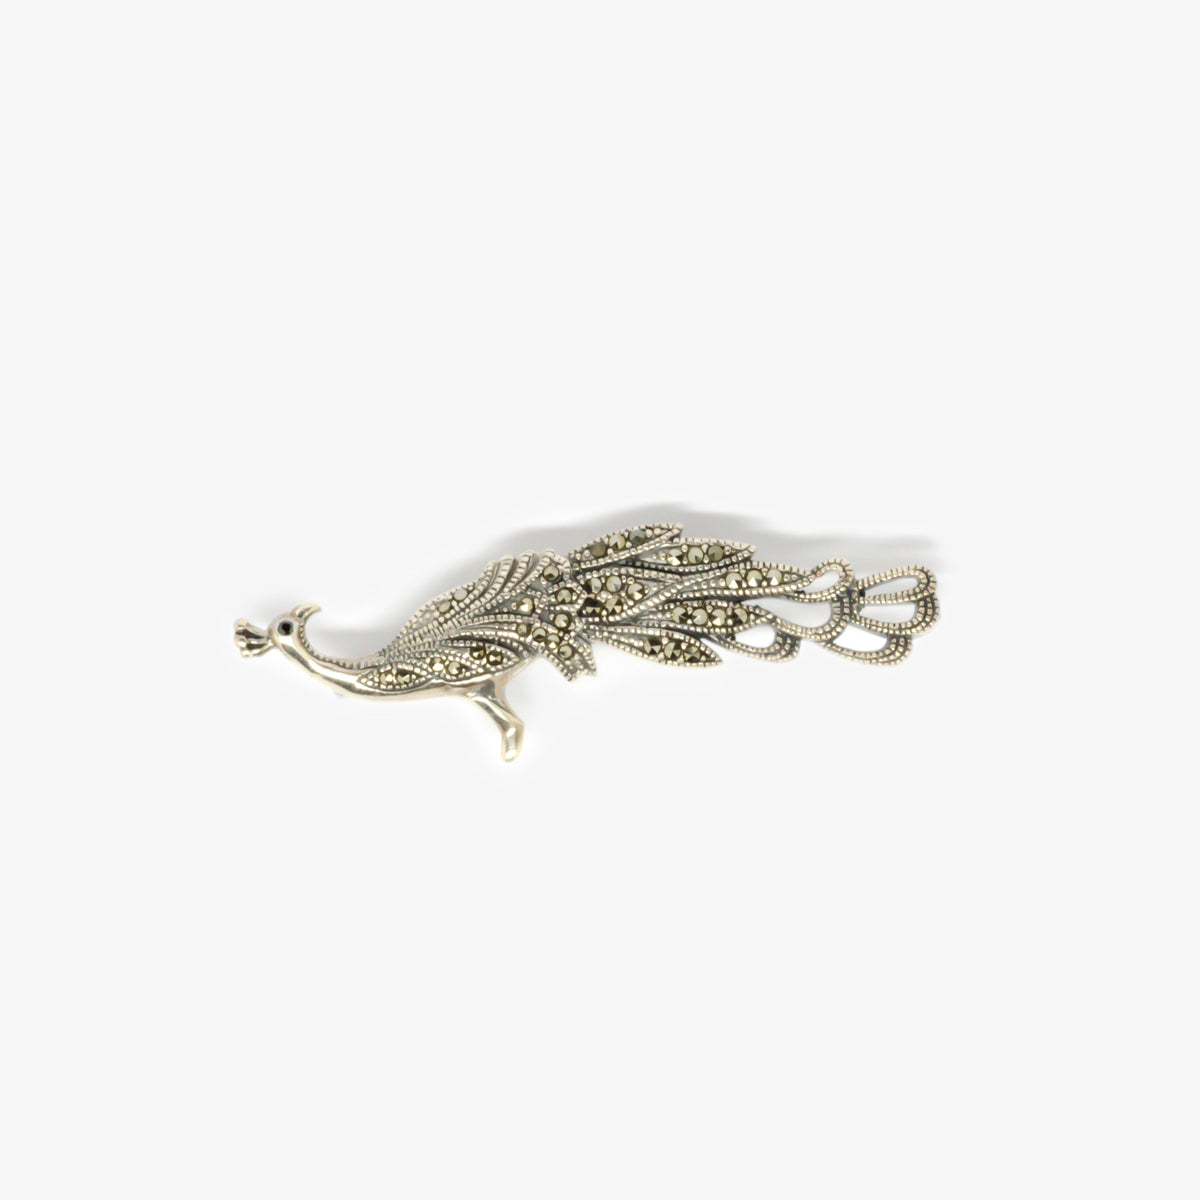 Jordans Jewellers silver marcasite peacock brooch - Alternate shot 1